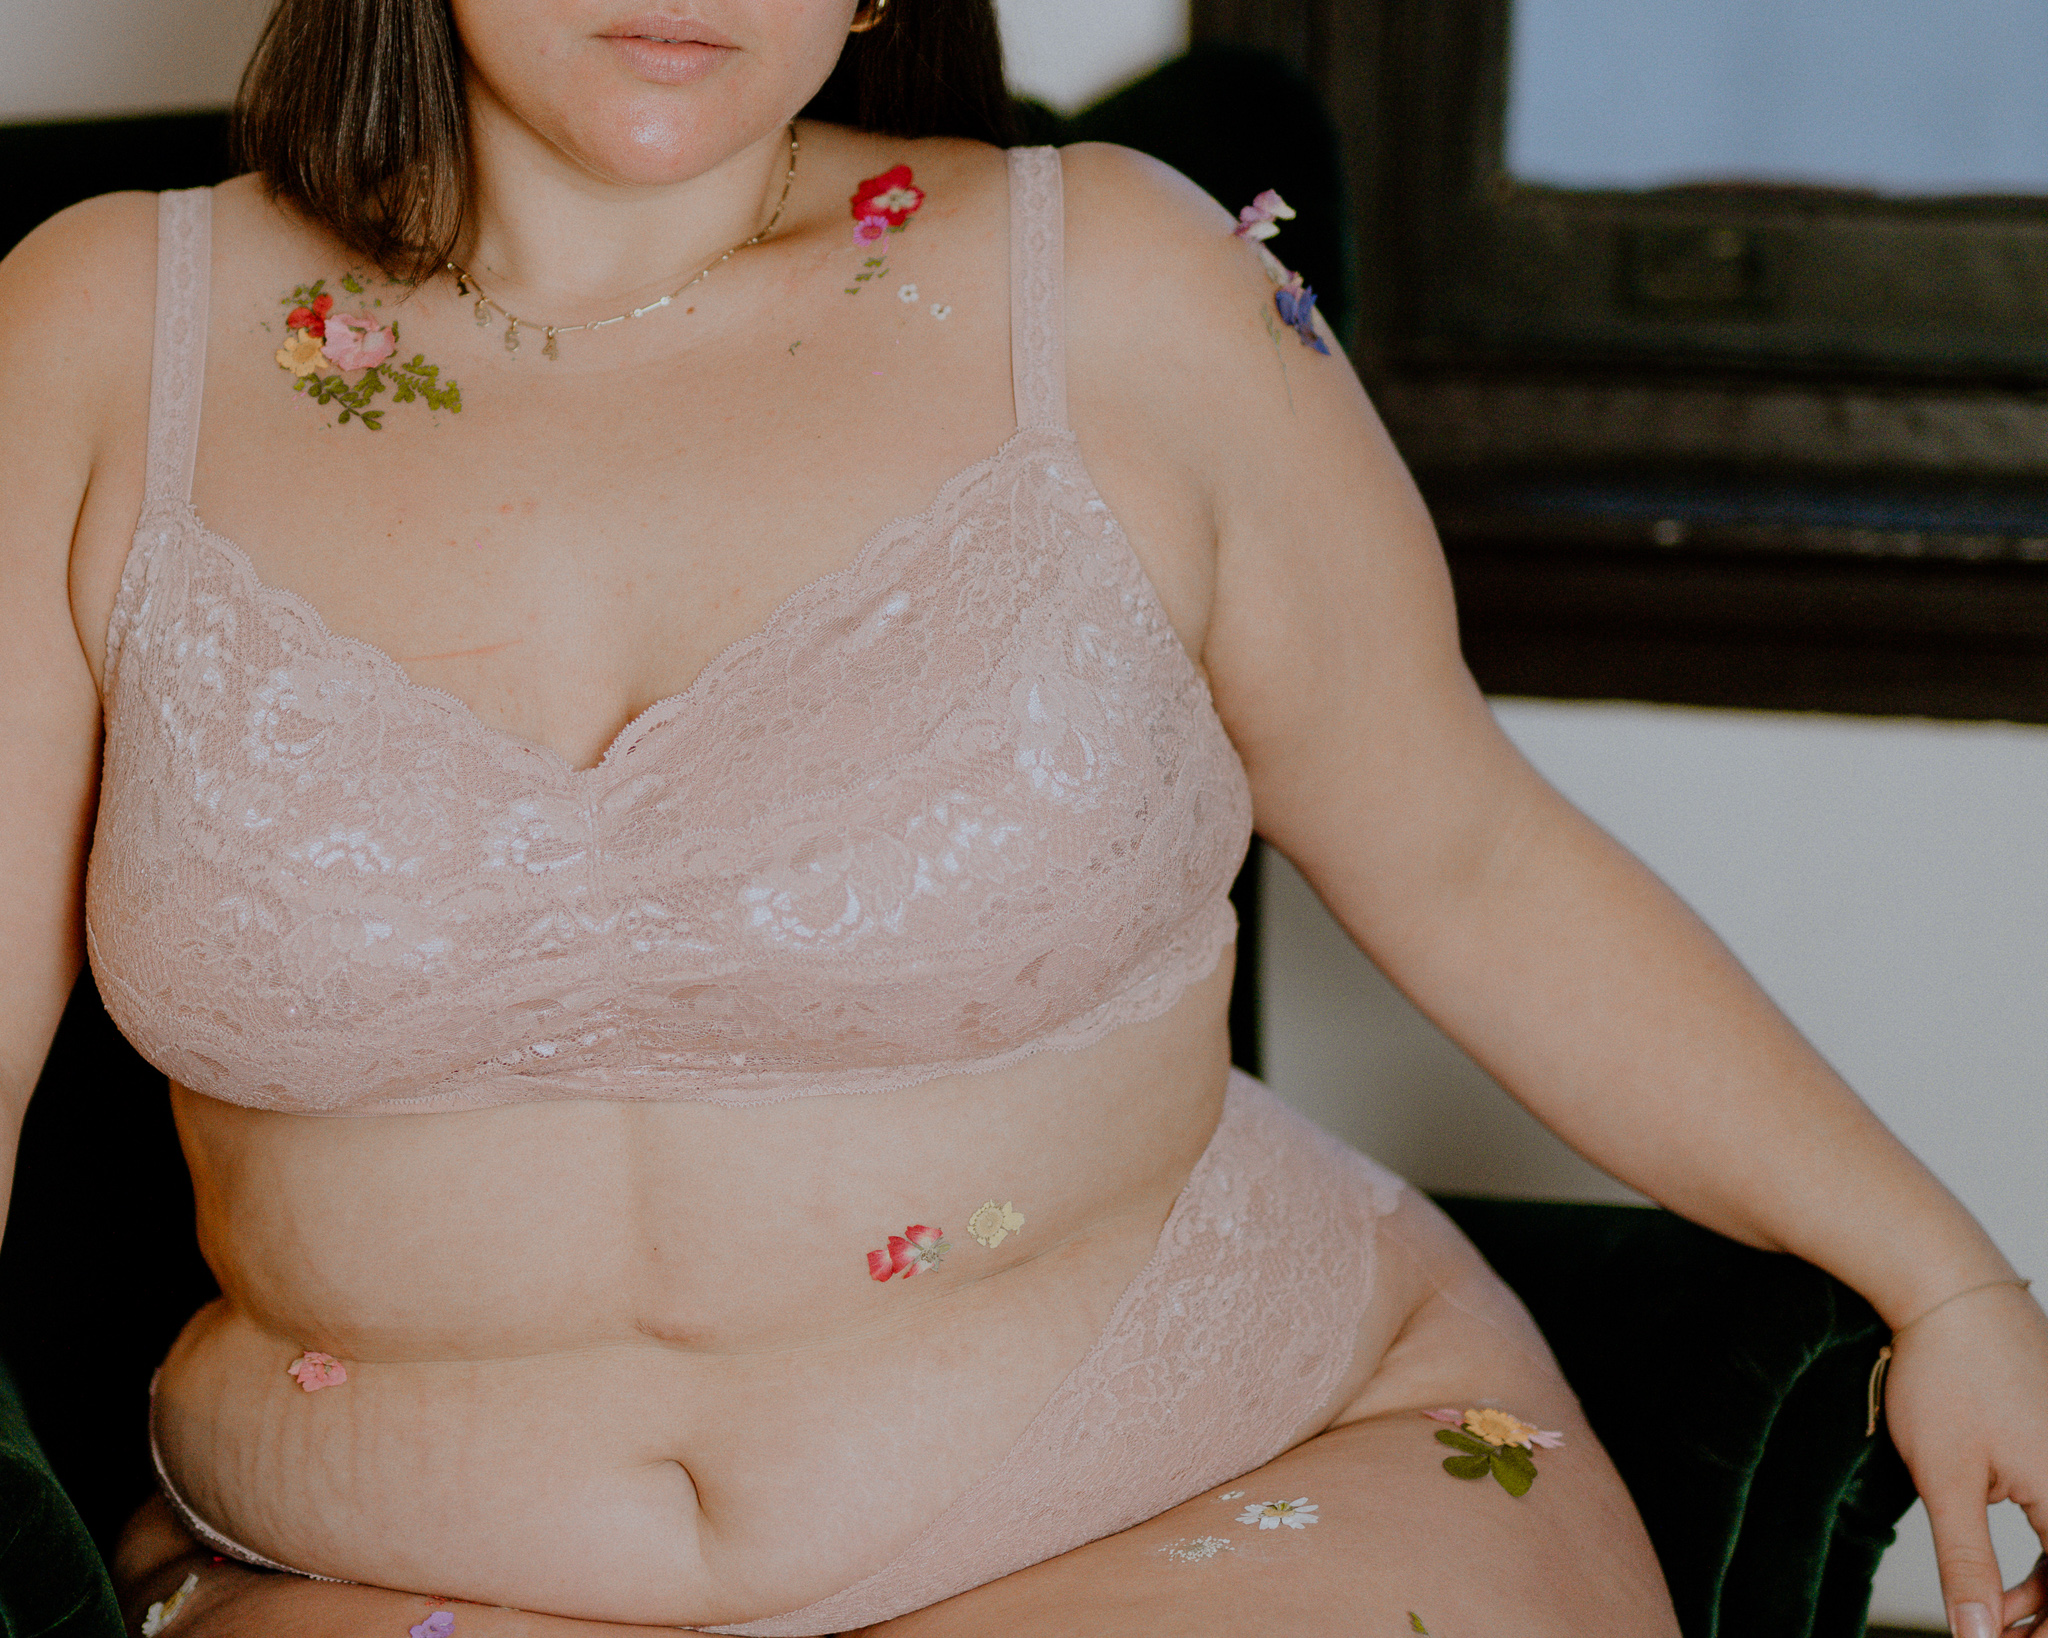 flower stretch marks body positivity plus size lingere